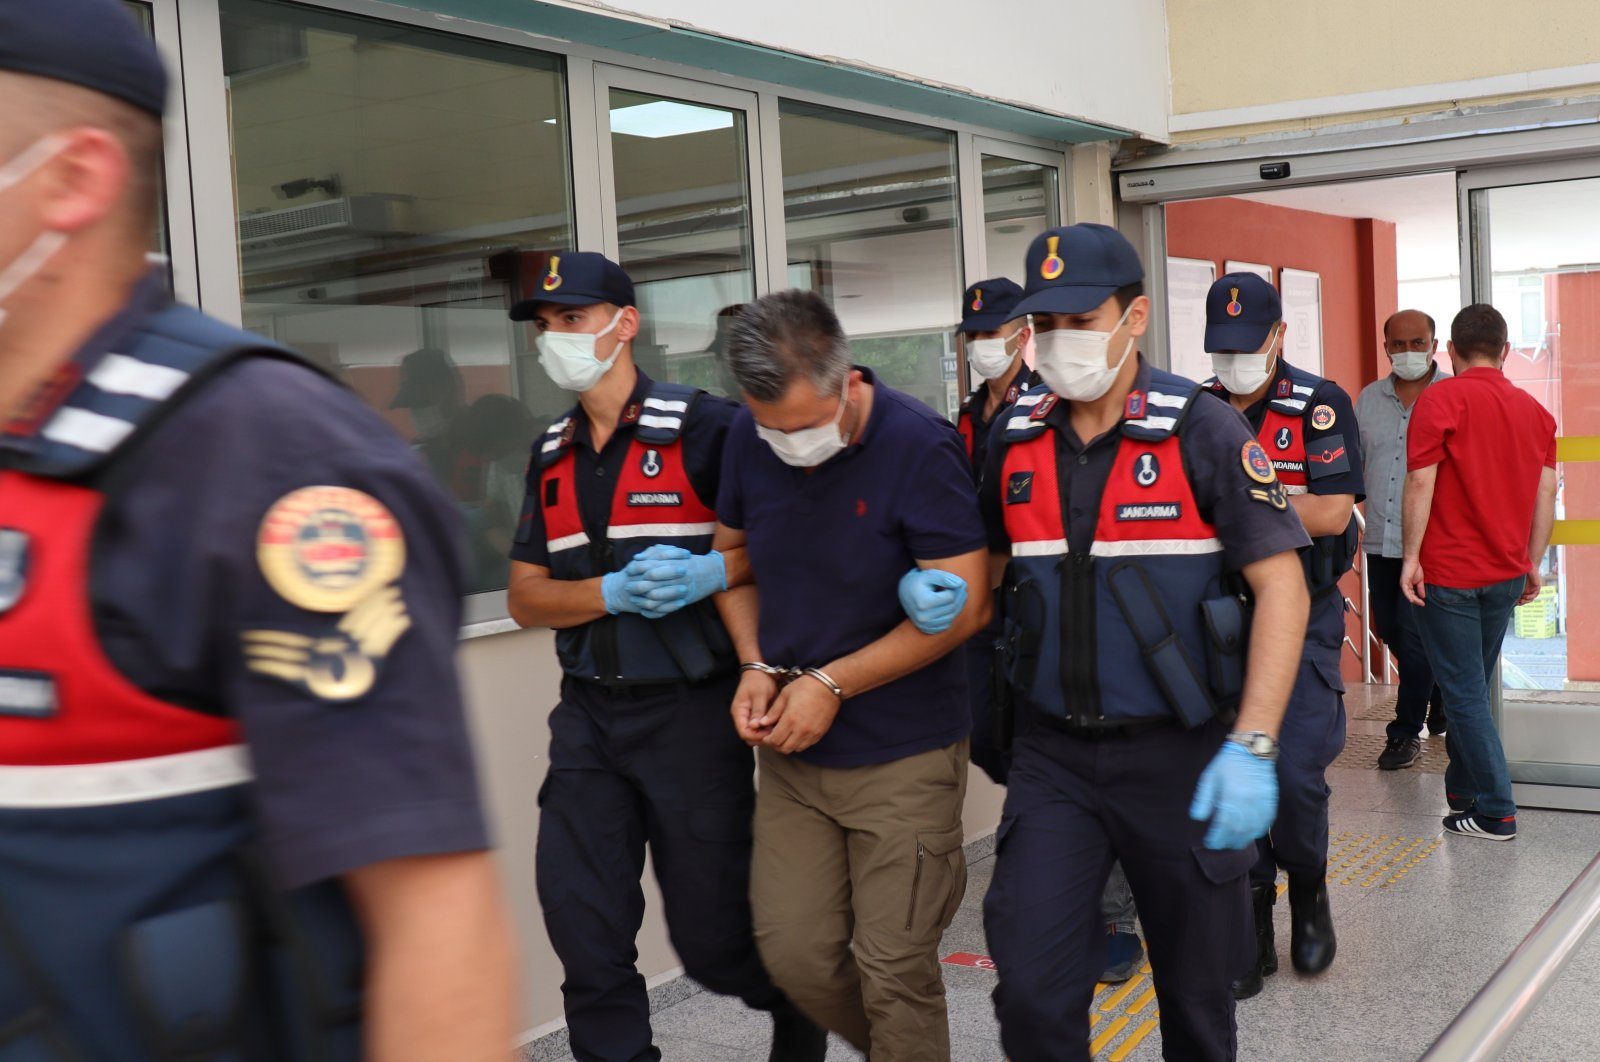 Military officers escort FETÖ suspects, captured in an operation, to the courthouse, in Kocaeli, northwestern Turkey, July 30, 2021. (IHA PHOTO)